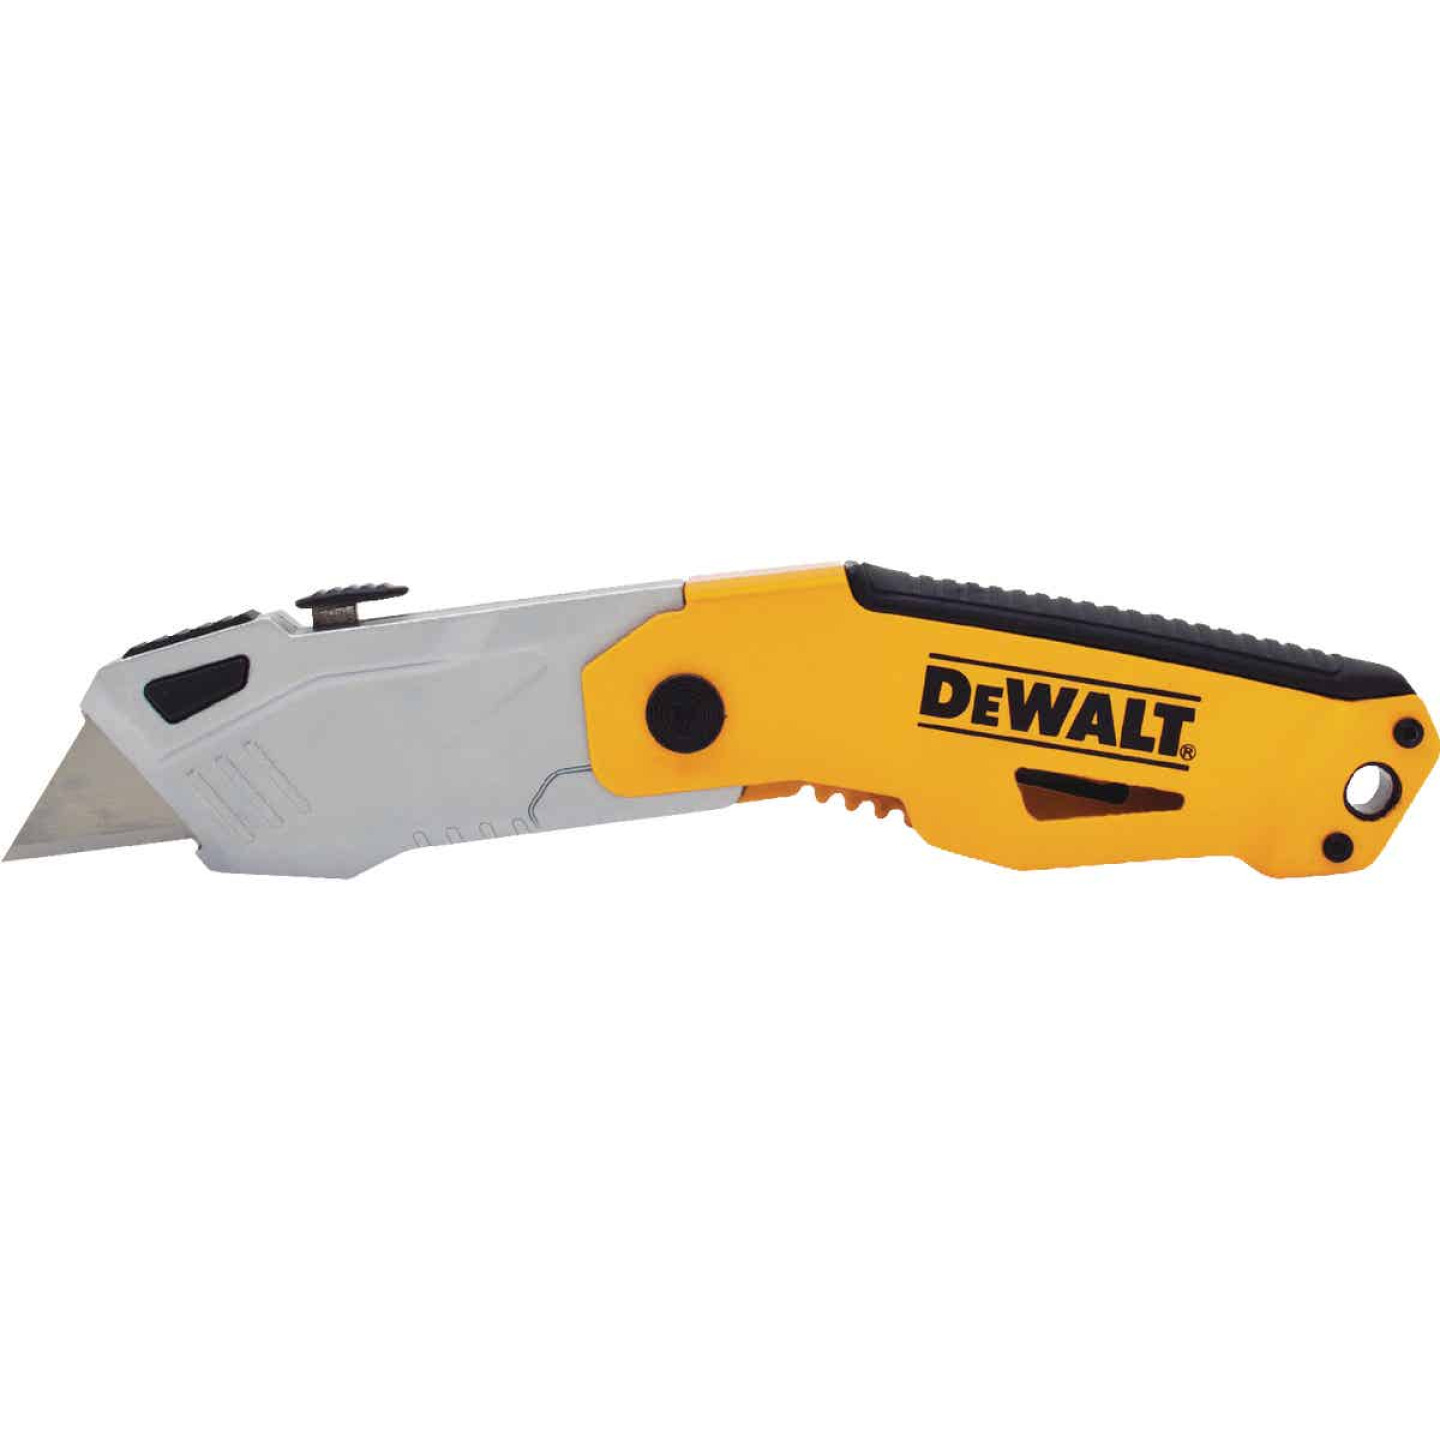 DeWalt Retractable Folding Auto-Load Utility Knife Image 1